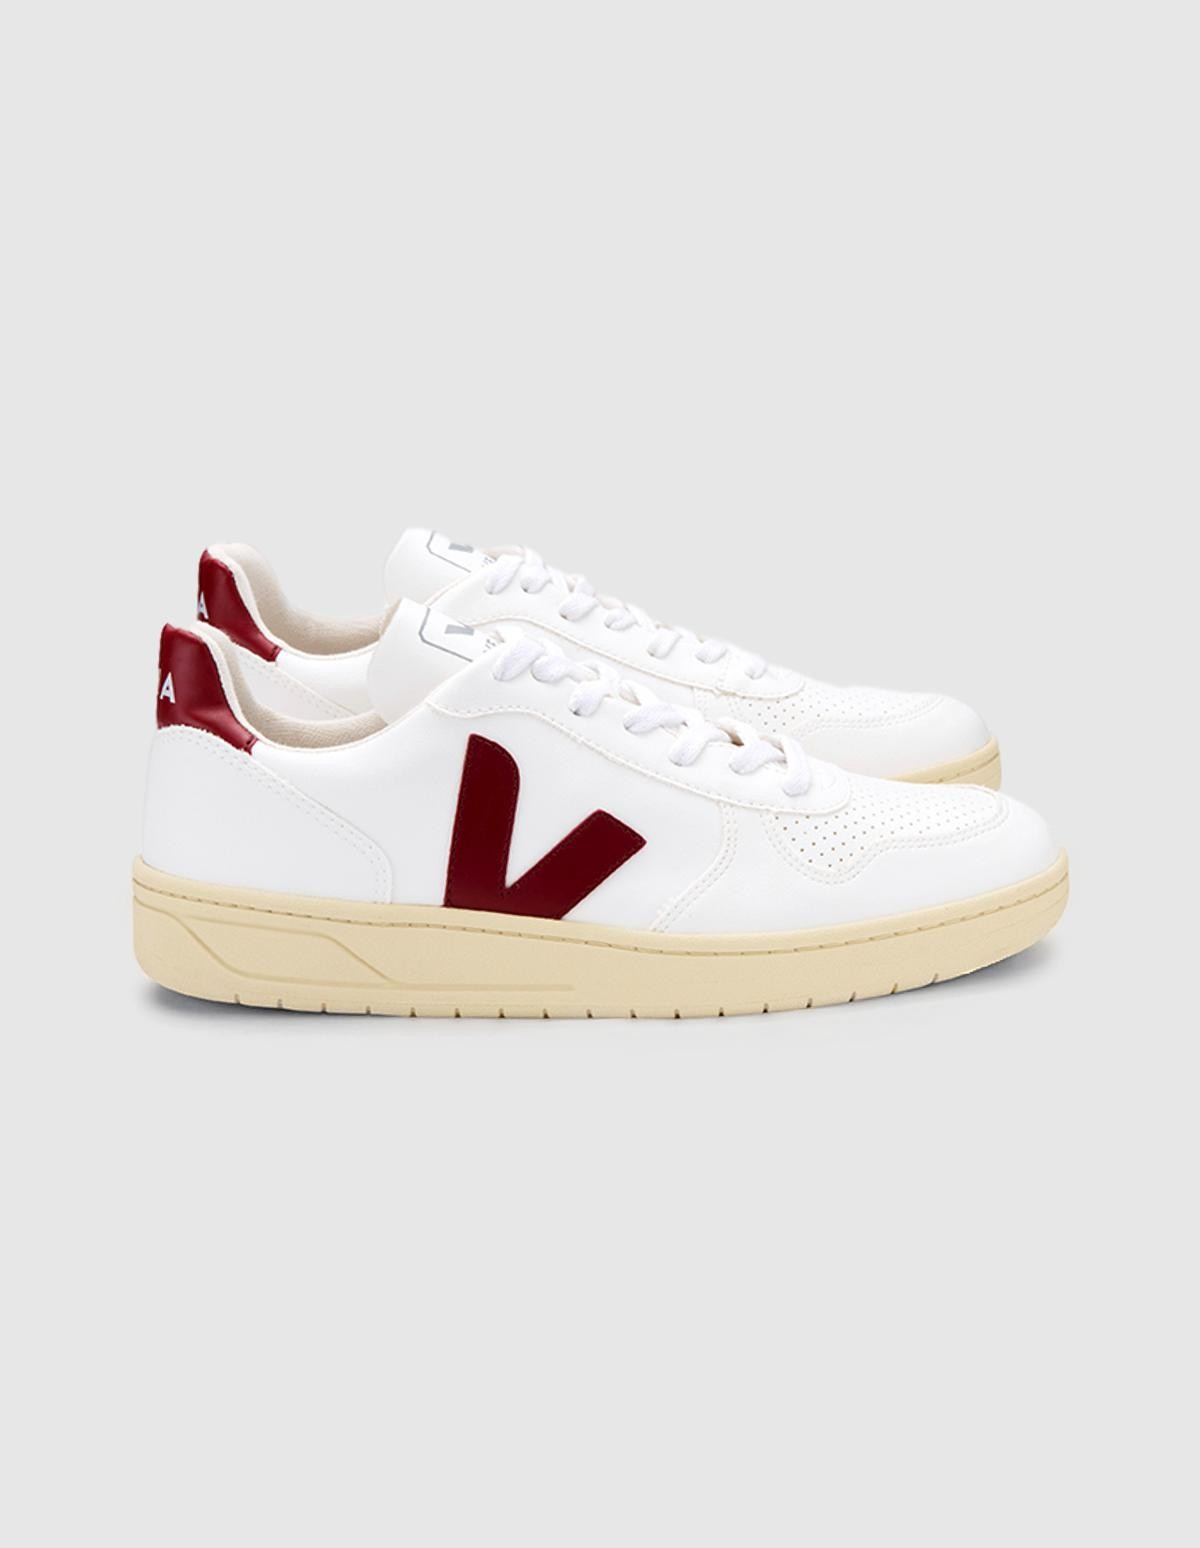 Veja V-10 Leather Bastille in White Marsala Butter Sole